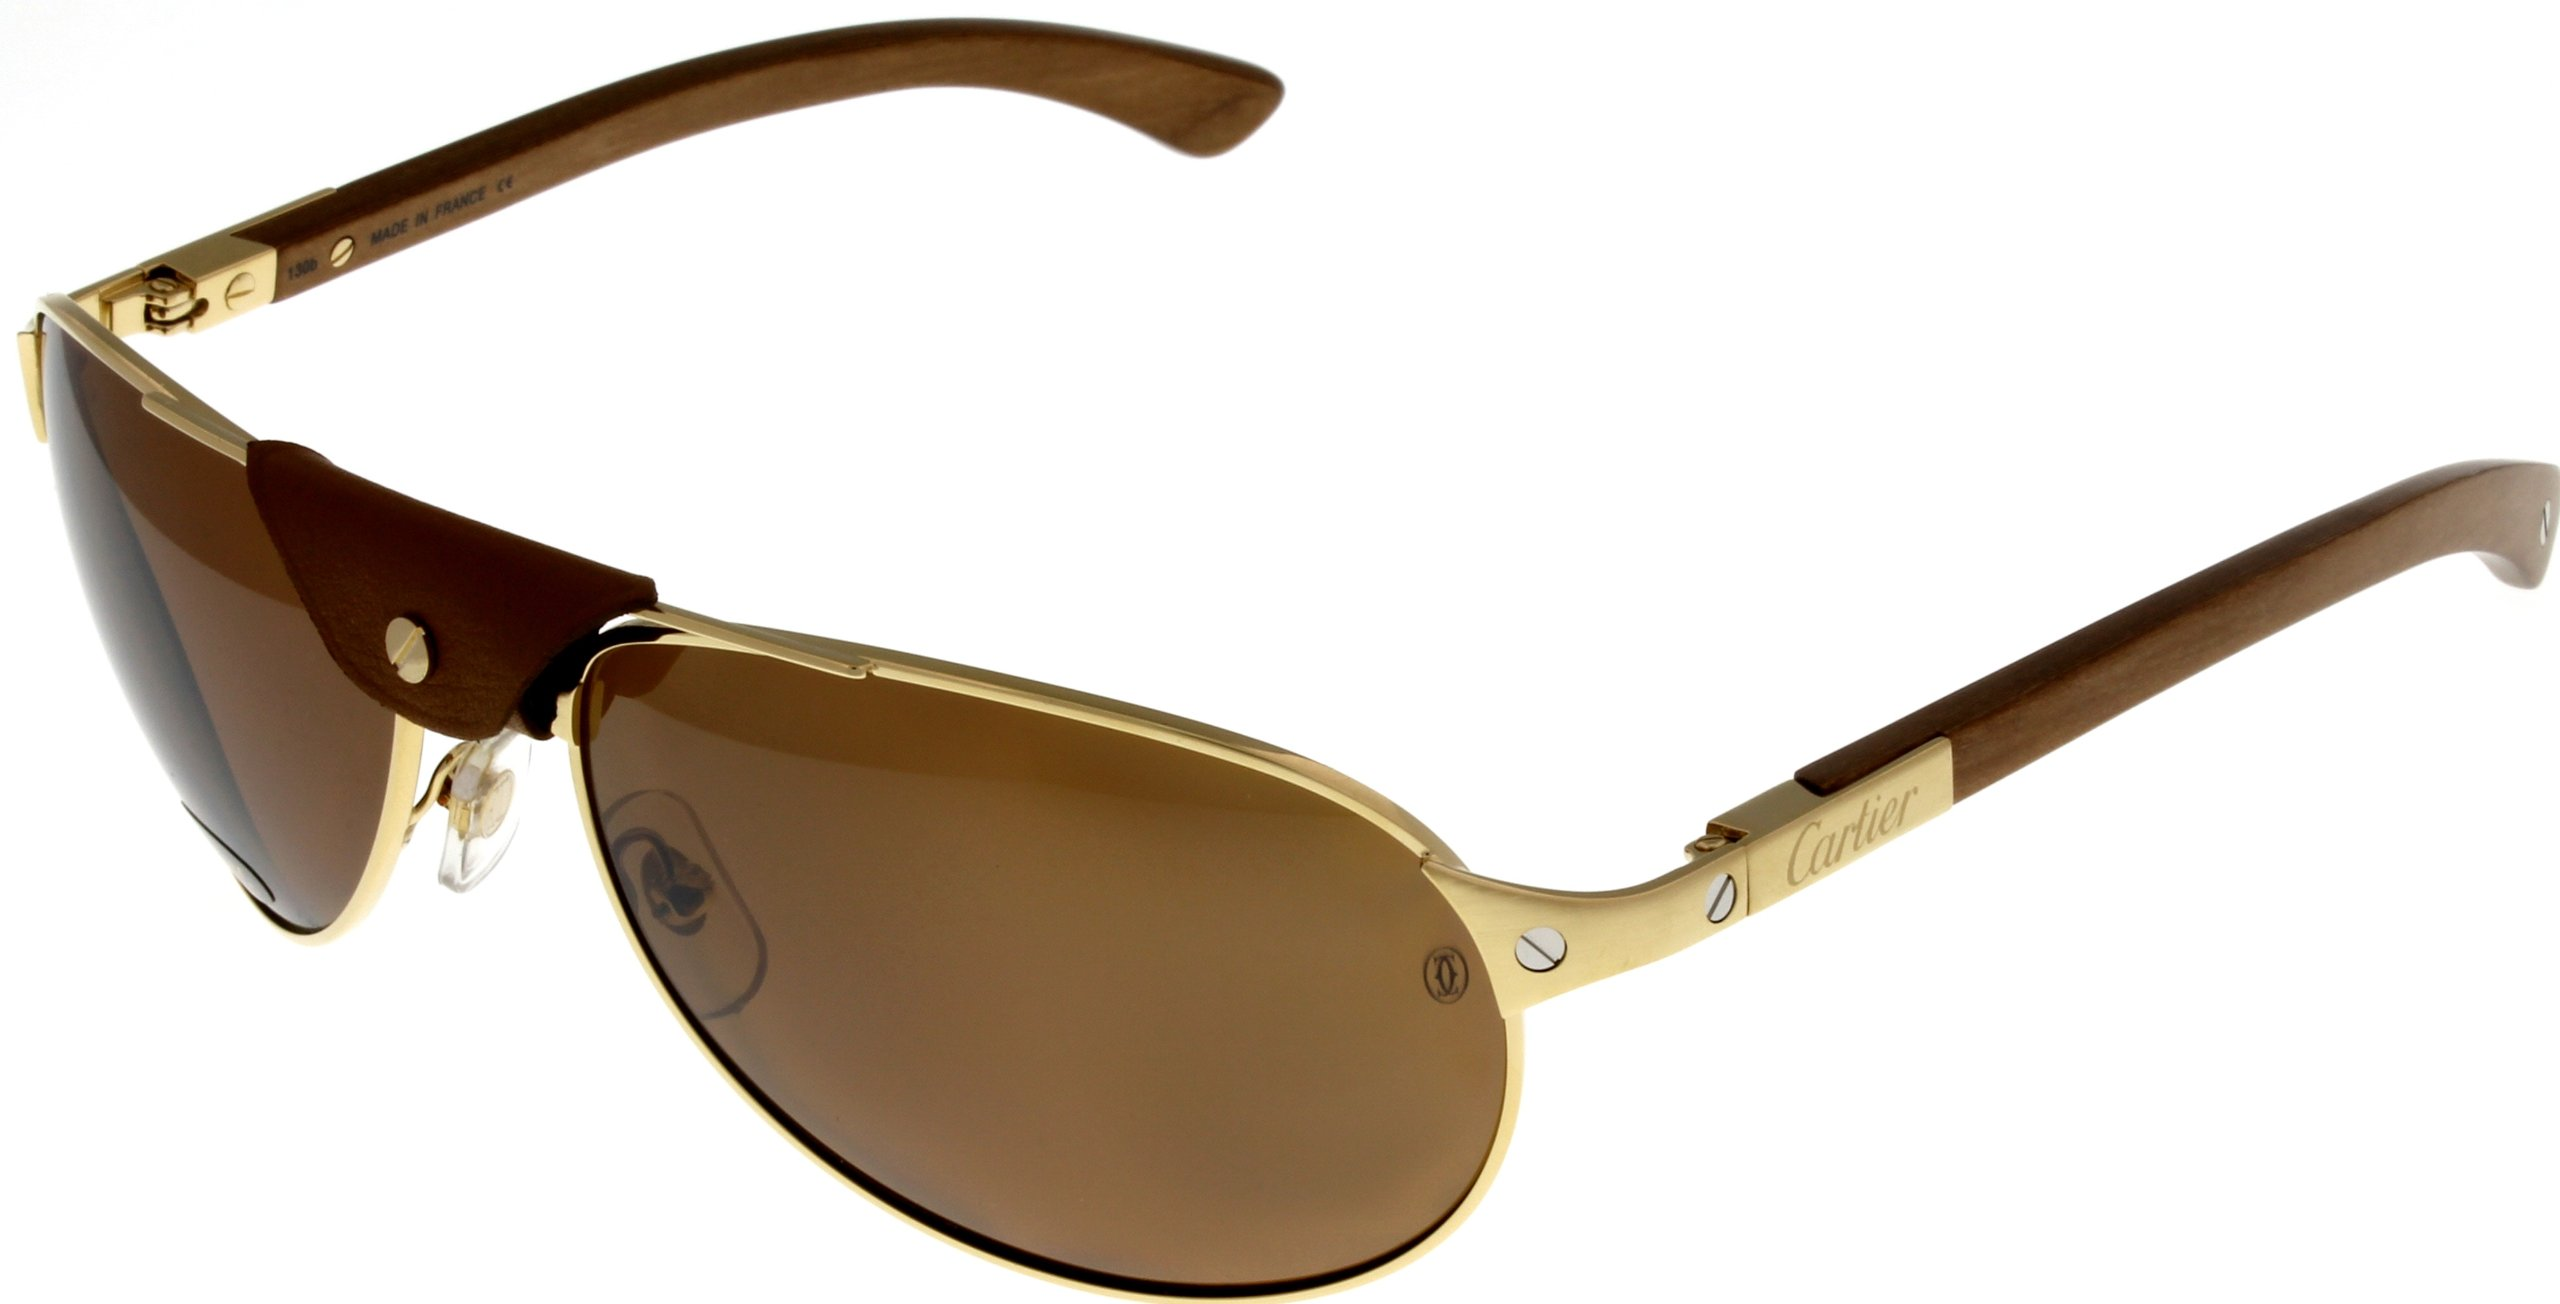 7d30444ab6207 Galleon - Cartier Sunglasses Polarized Santos-Dumont Aviator Wood Unisex  T8200862